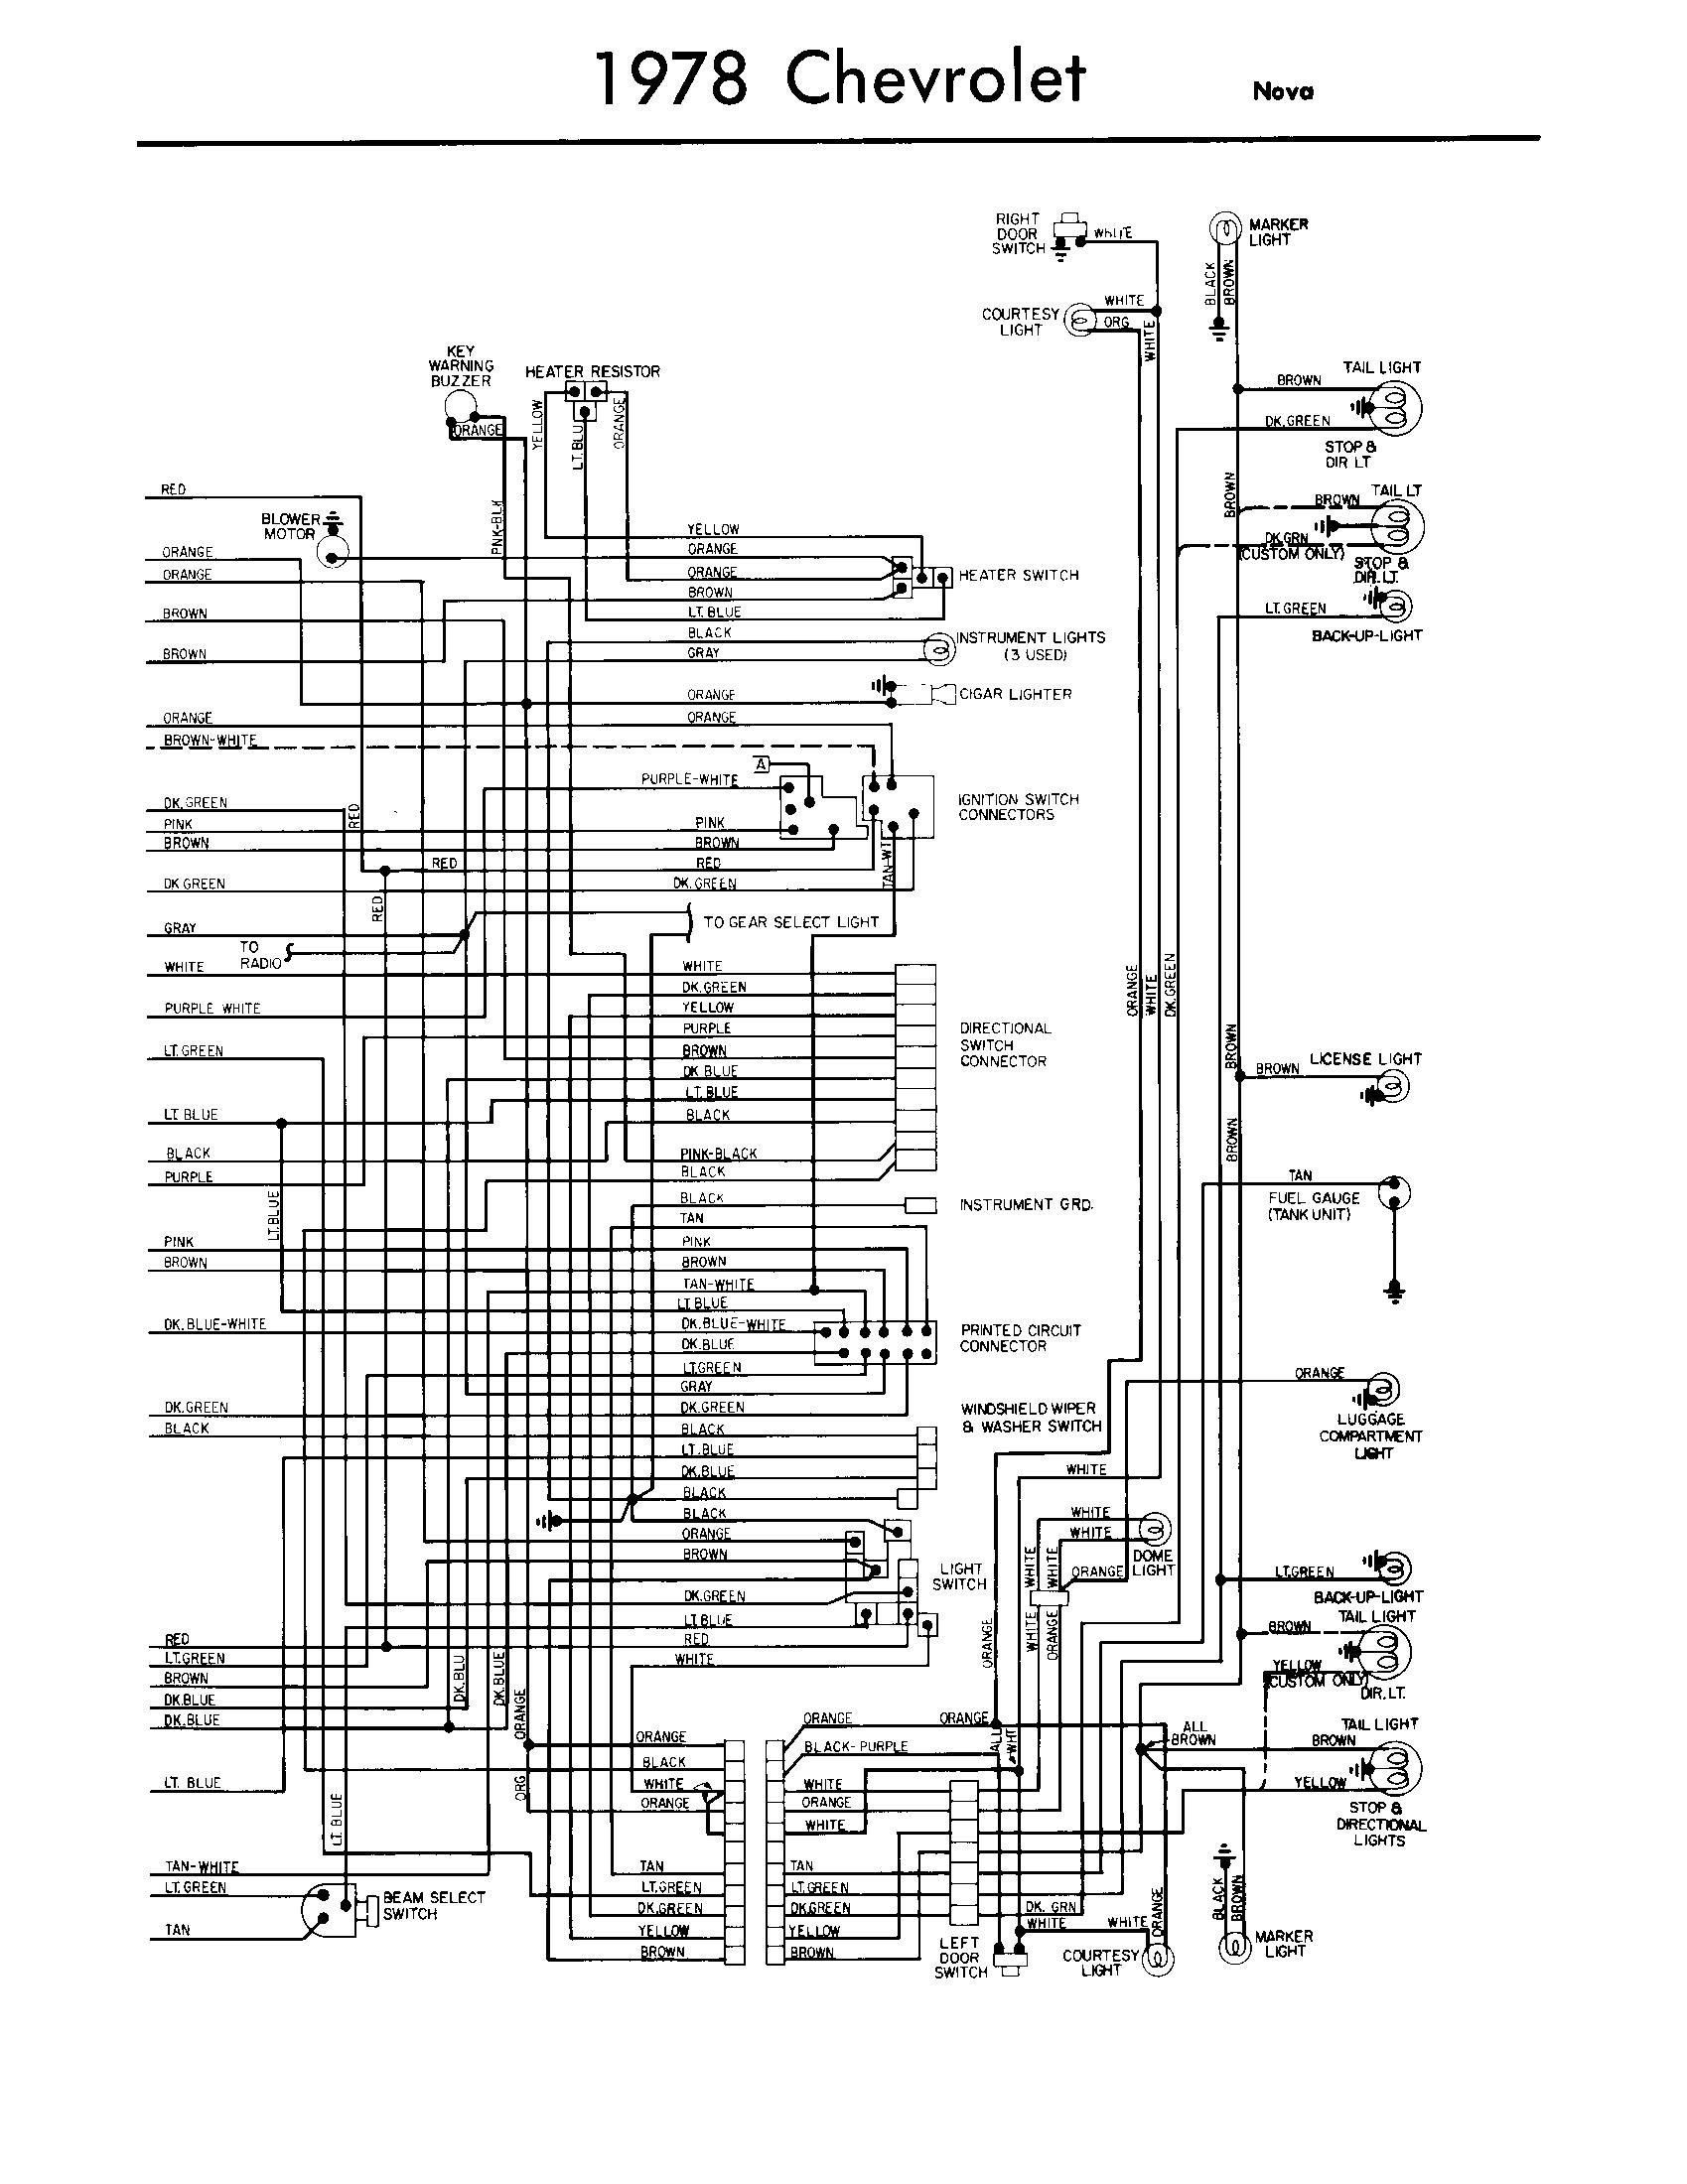 71 corvette wiring diagram free download schematic smart wiring rh emgsolutions co